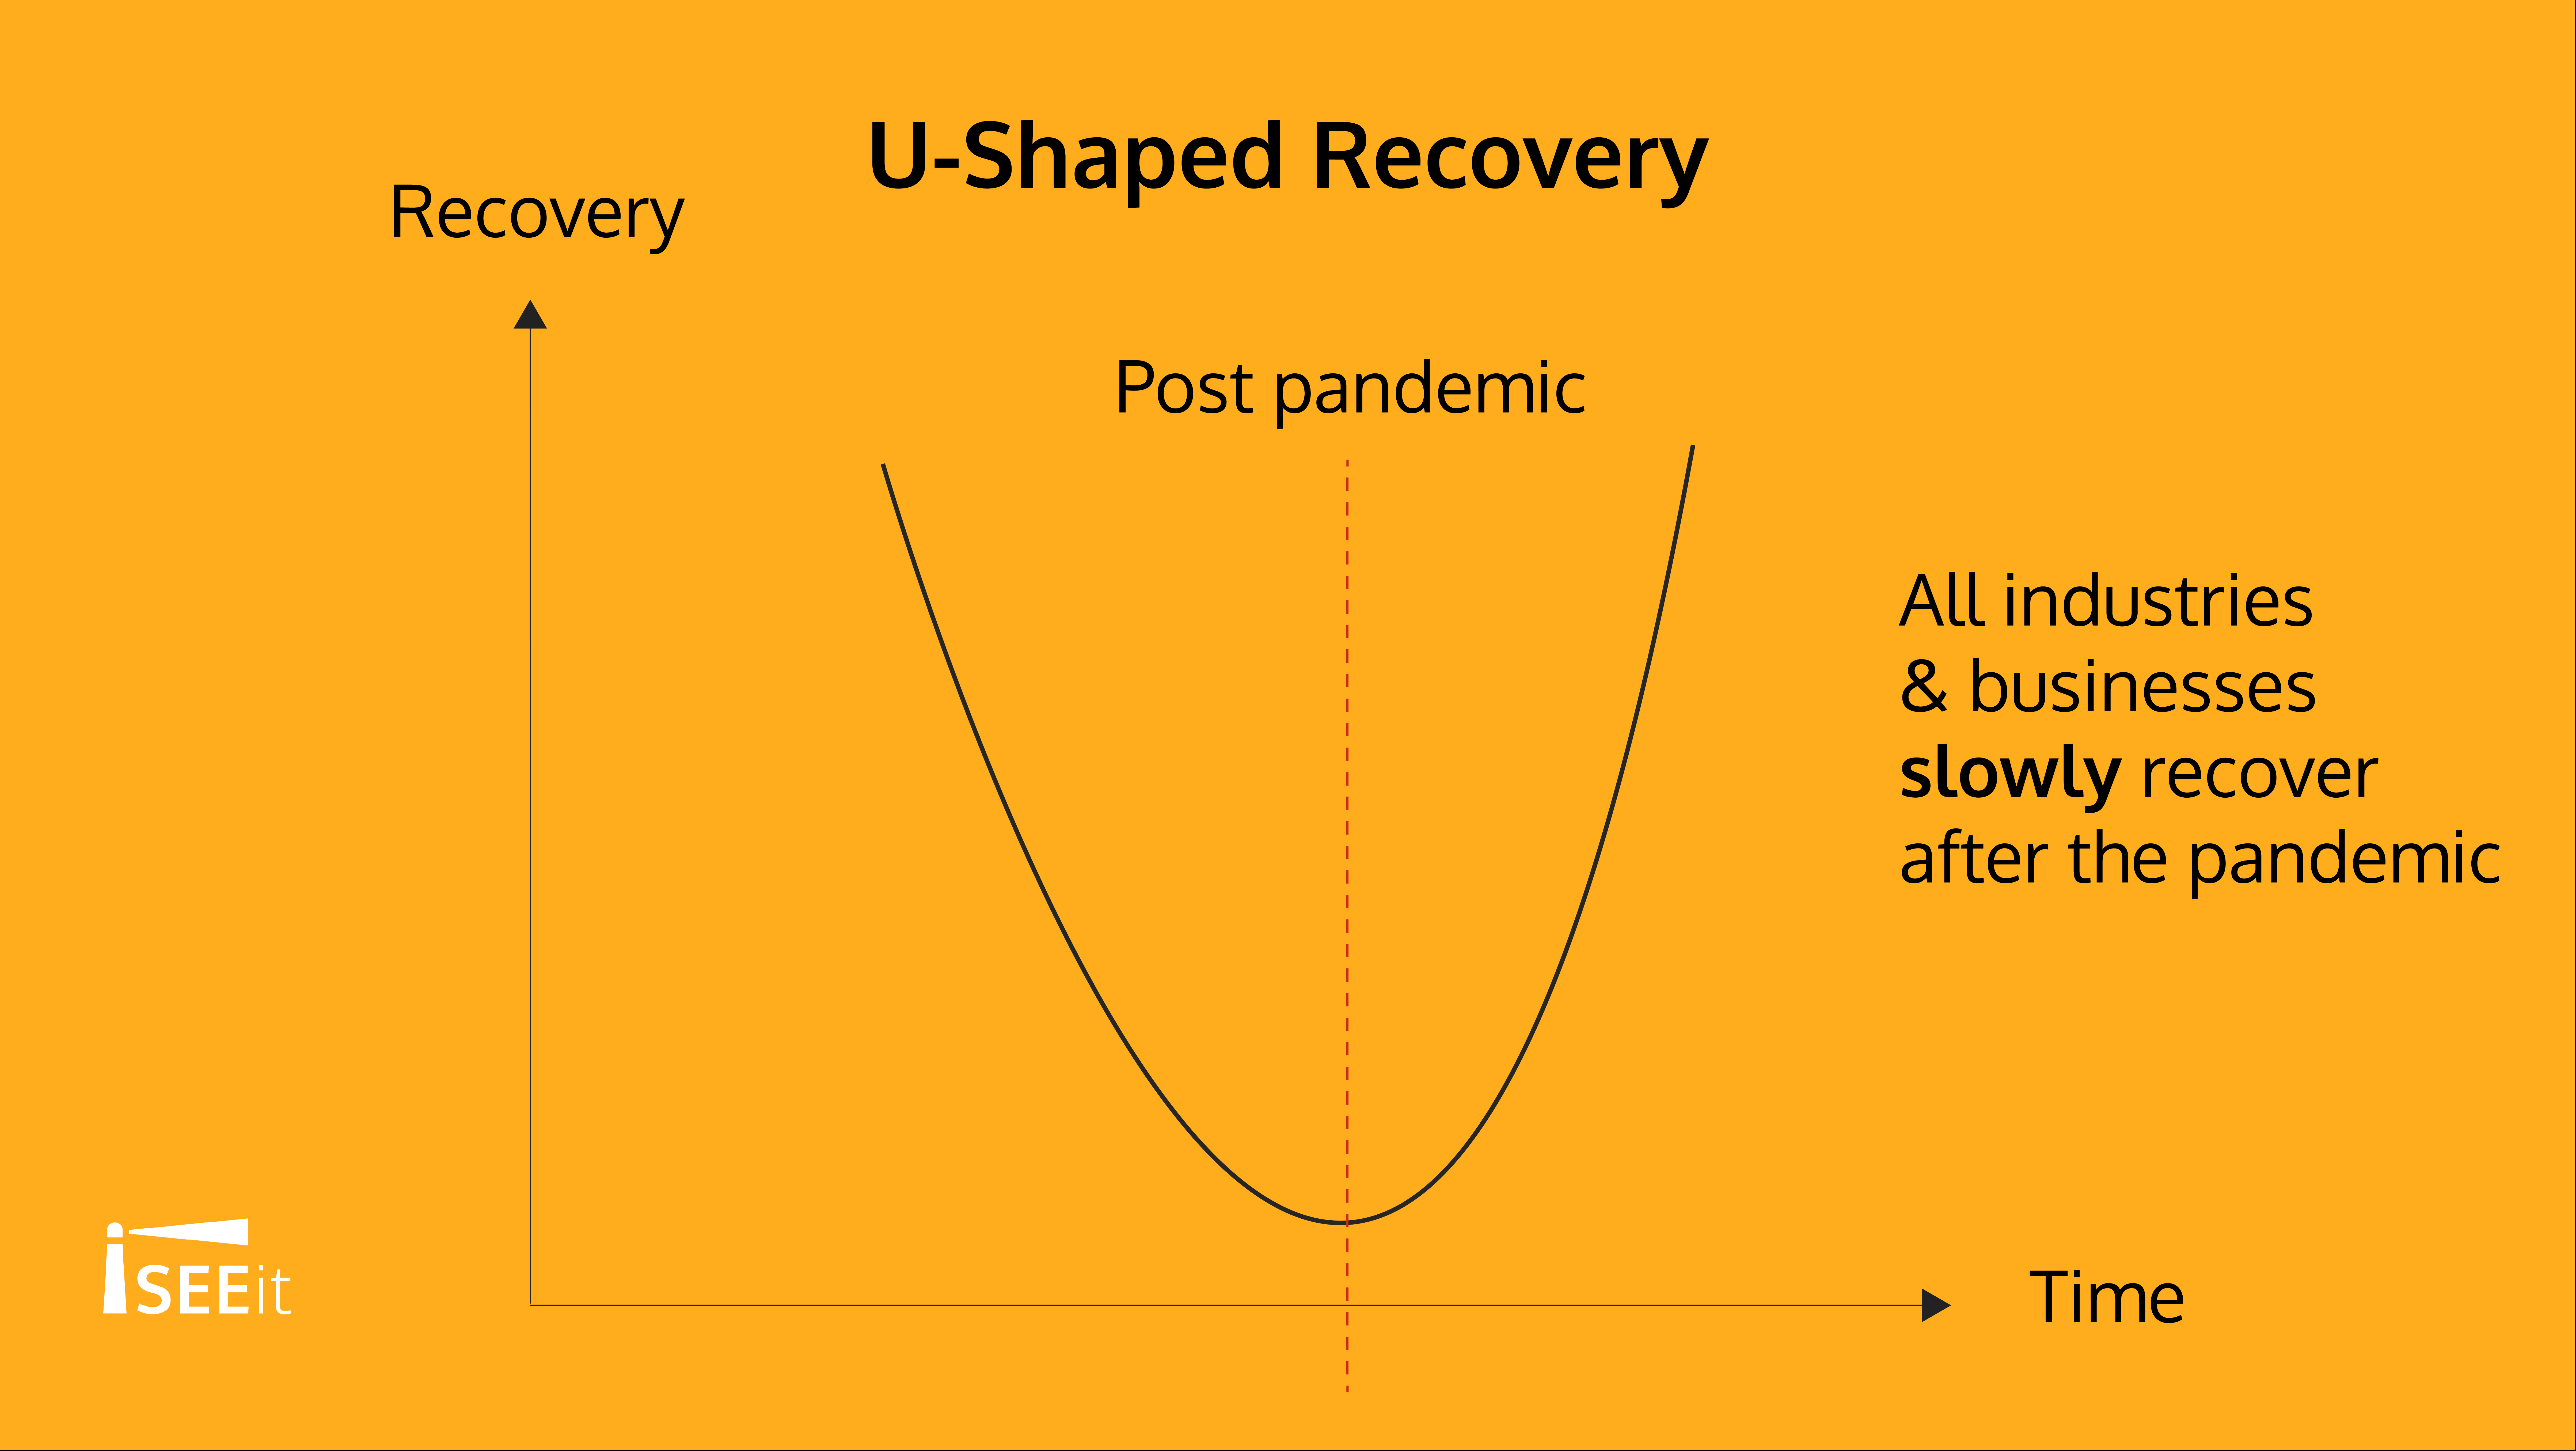 u-shaped-recovery-iseeit